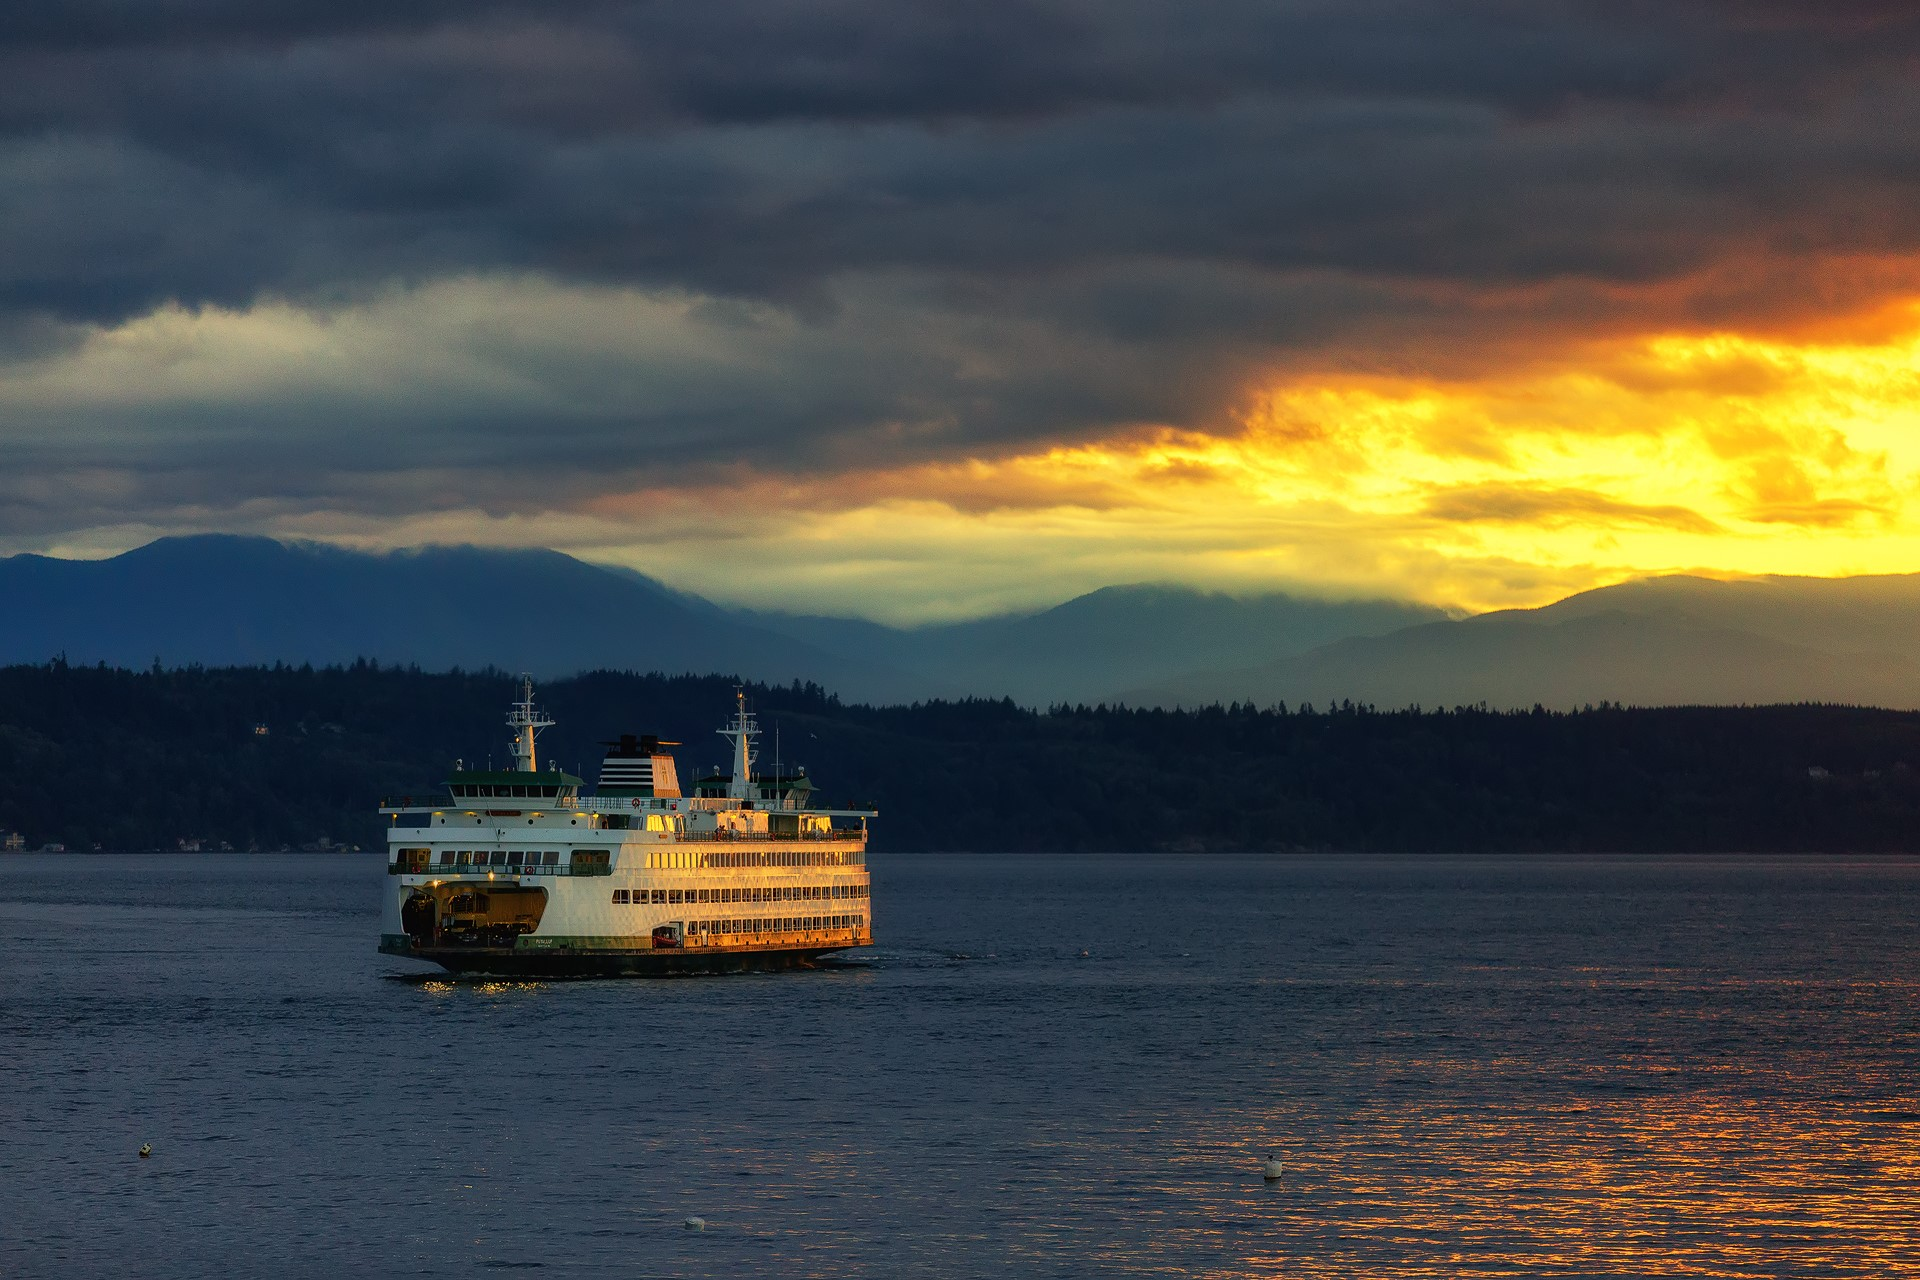 Sunset in Edmonds, Wash.  (Photo: Harry Shin)